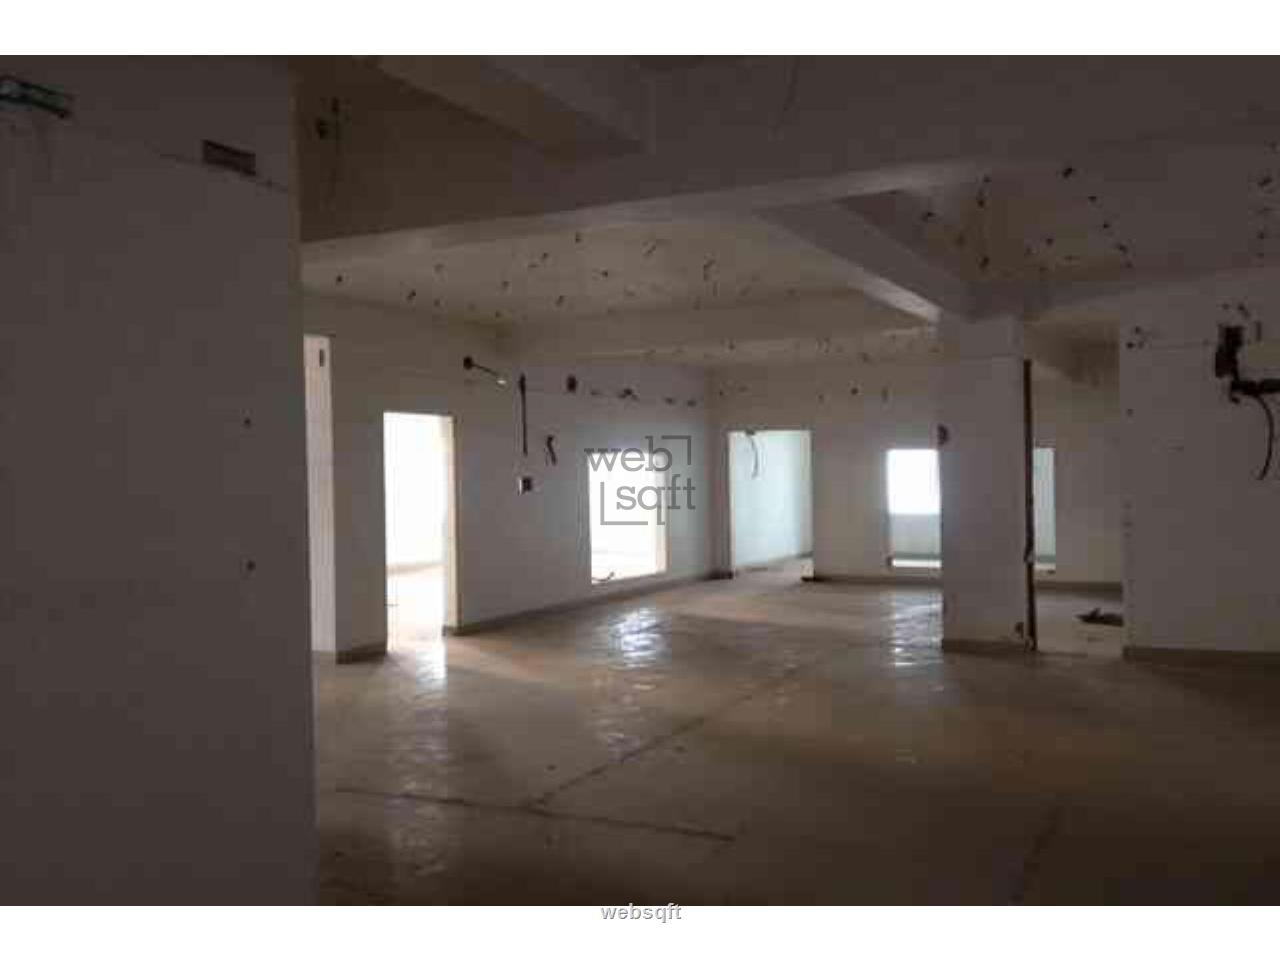 Websqft - Commercial Office Space - Property for Rent - in 2600Sq-ft/Abids at Rs 117000